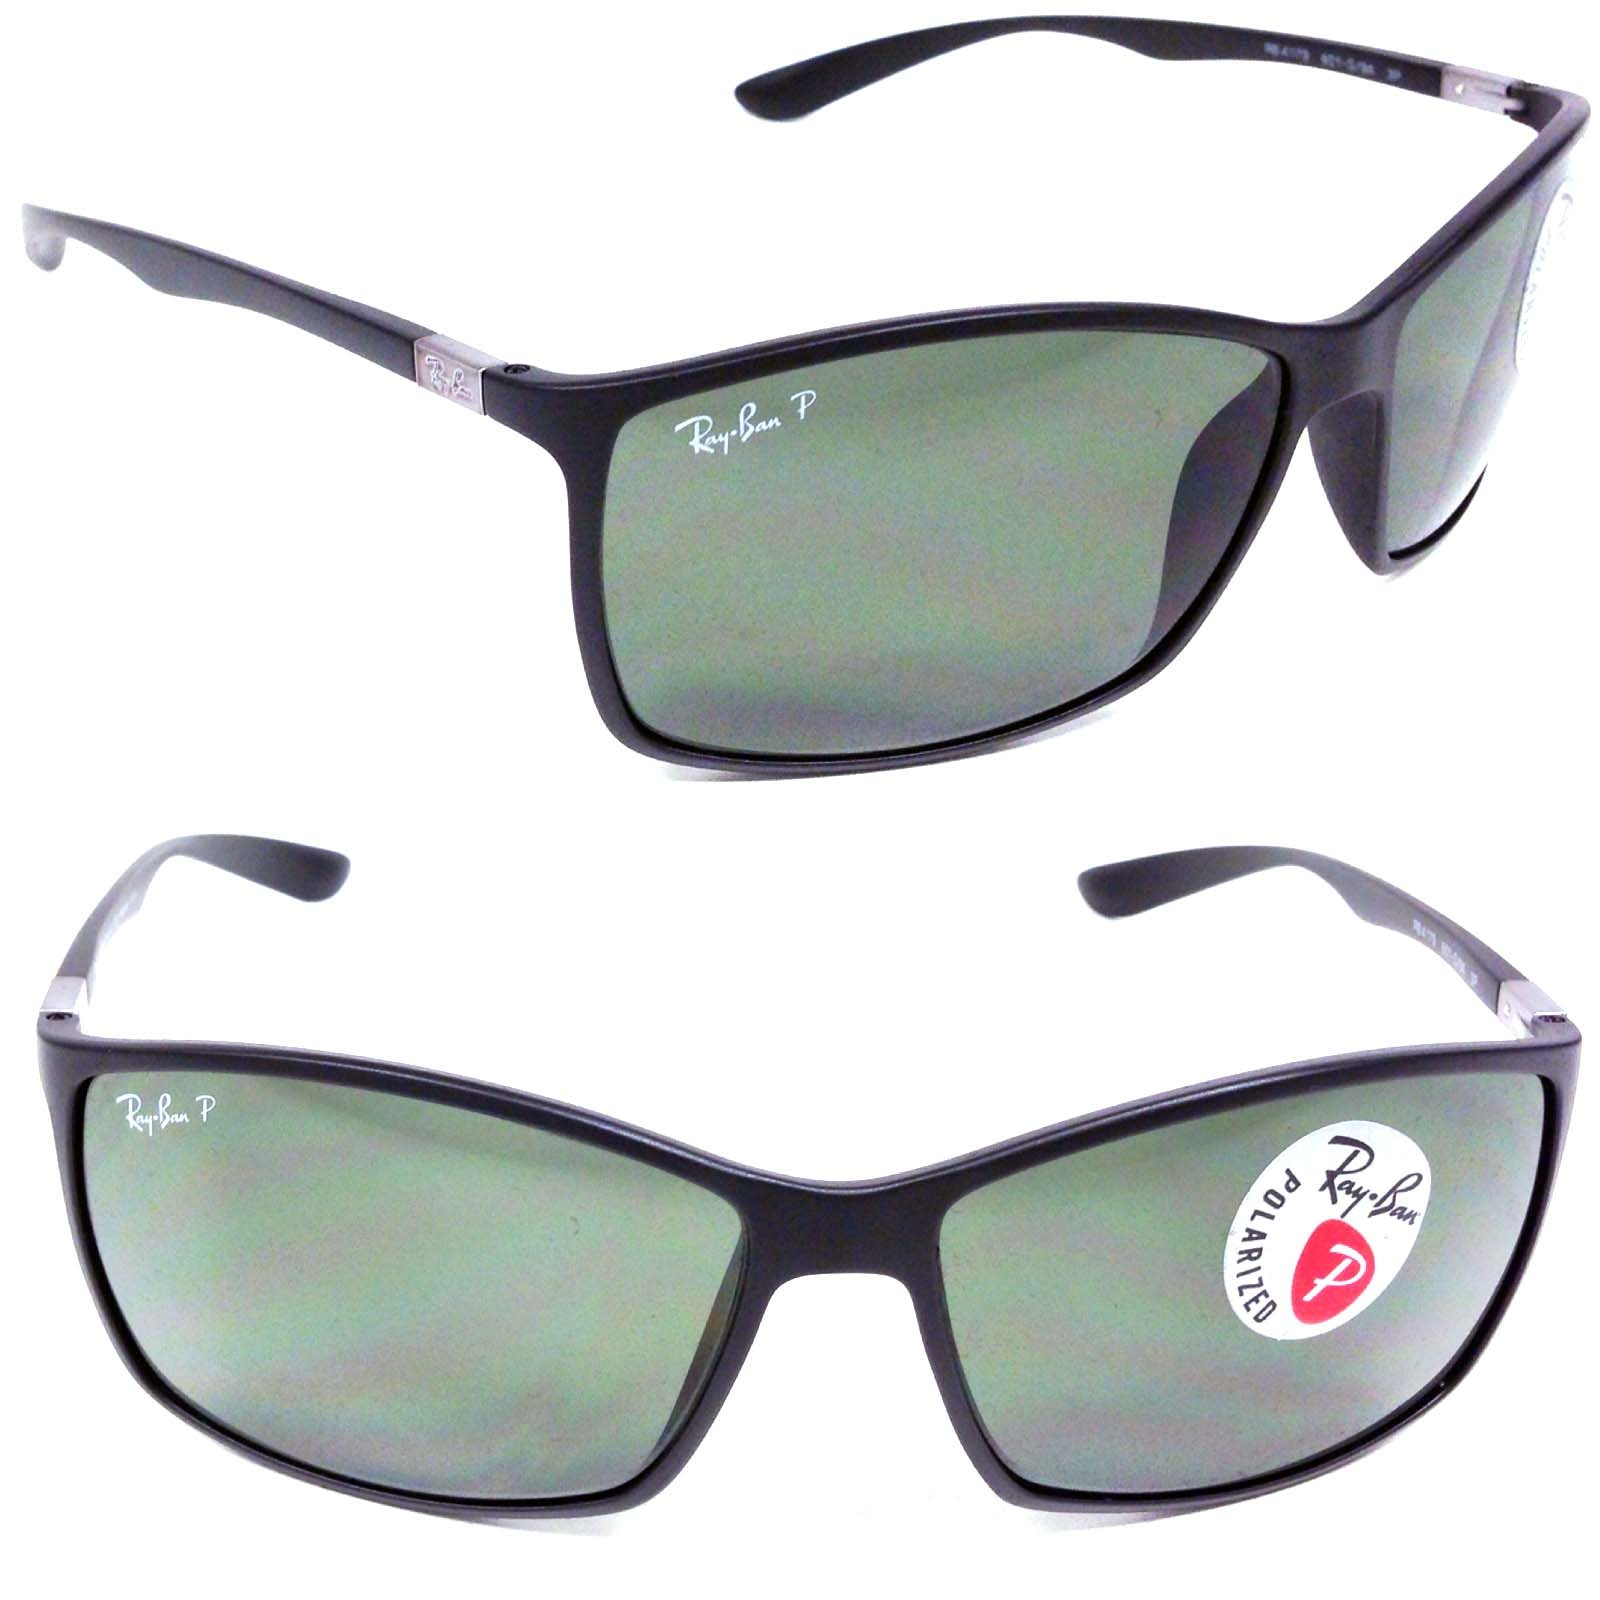 49e785a308 Ray Ban Rb4179 601s